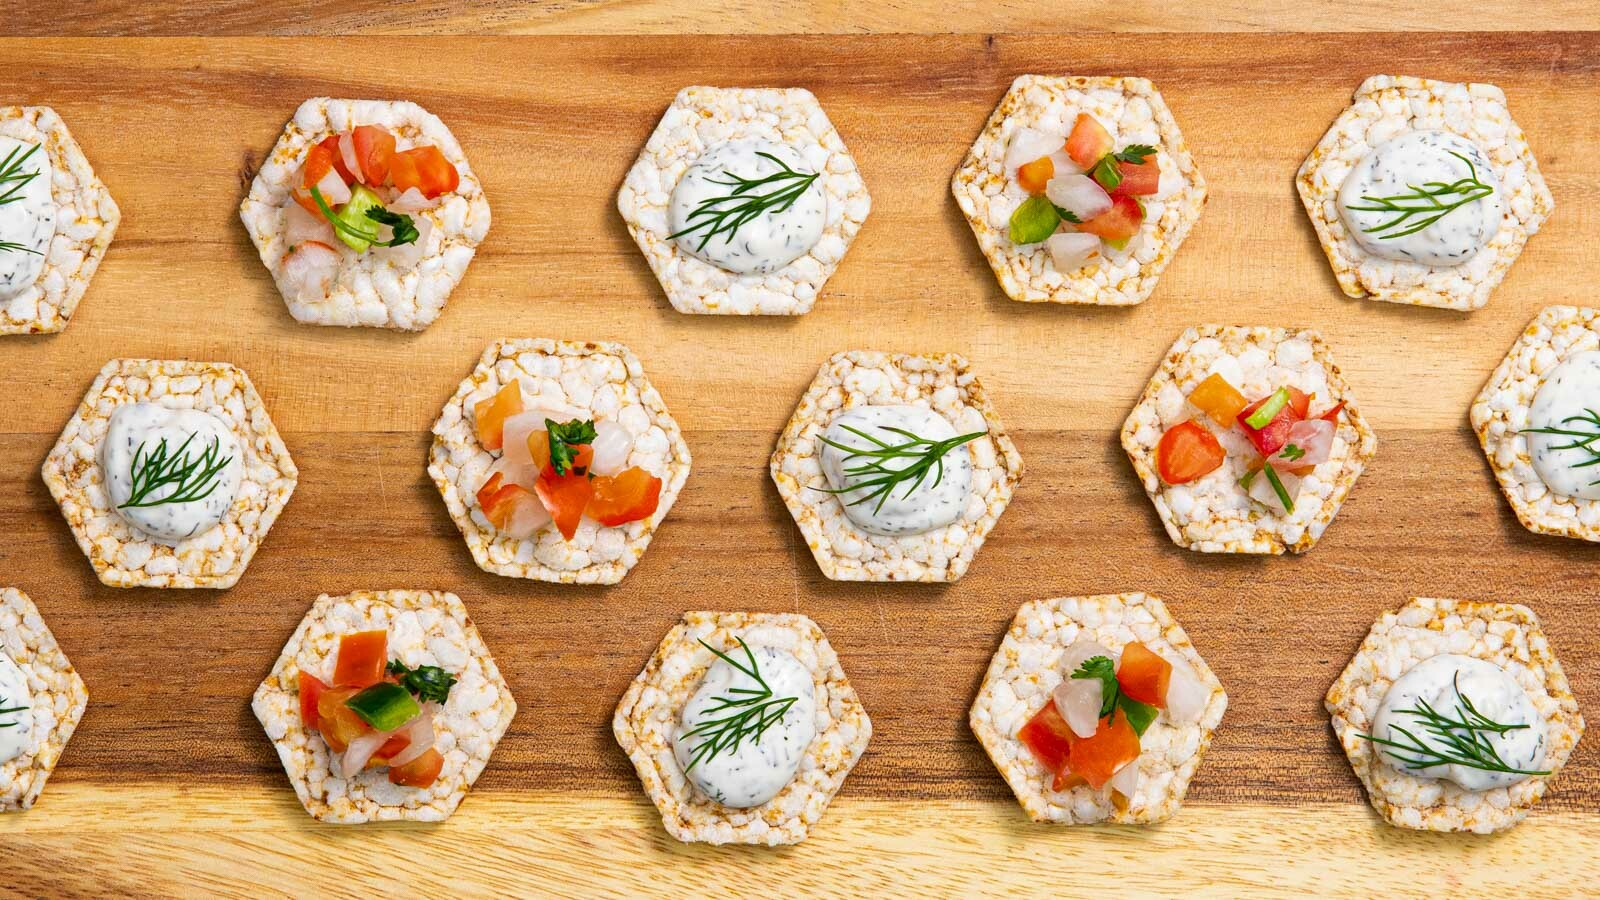 Lundberg Rice Cakes Minis with toppings